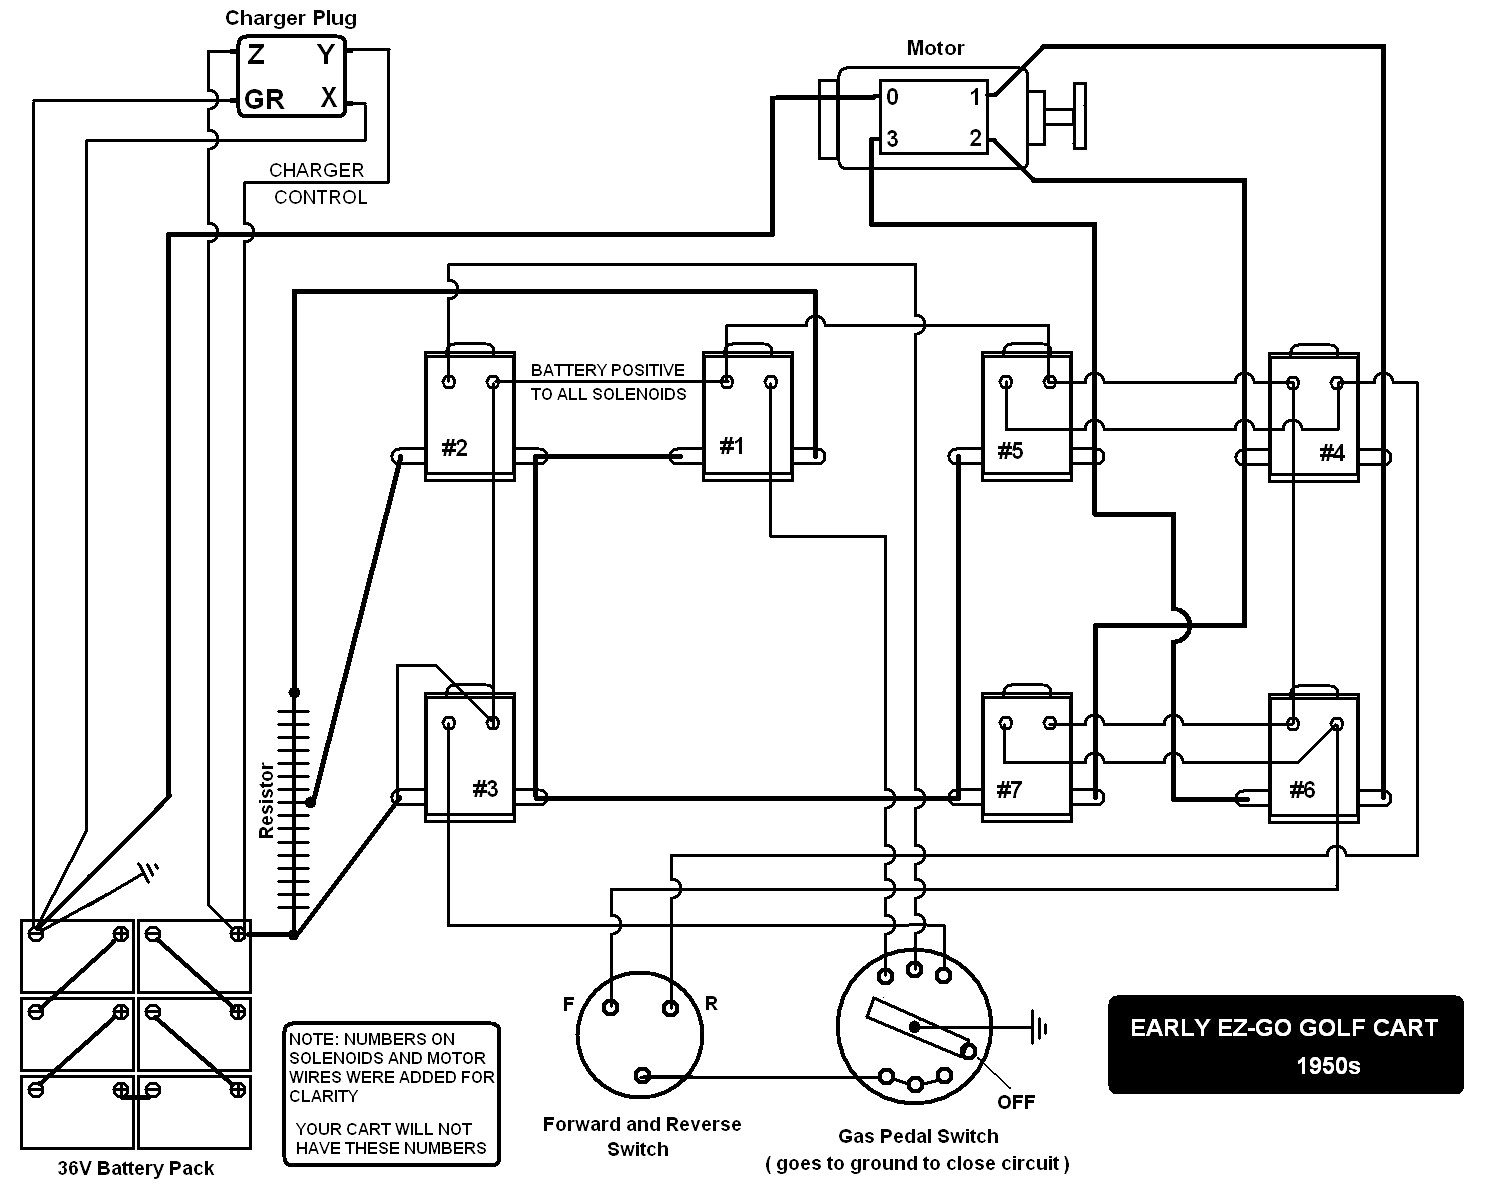 Collection Of 36 Volt Ez Go Golf Cart Wiring Diagram Sample - Ez Go Txt 36 Volt Wiring Diagram